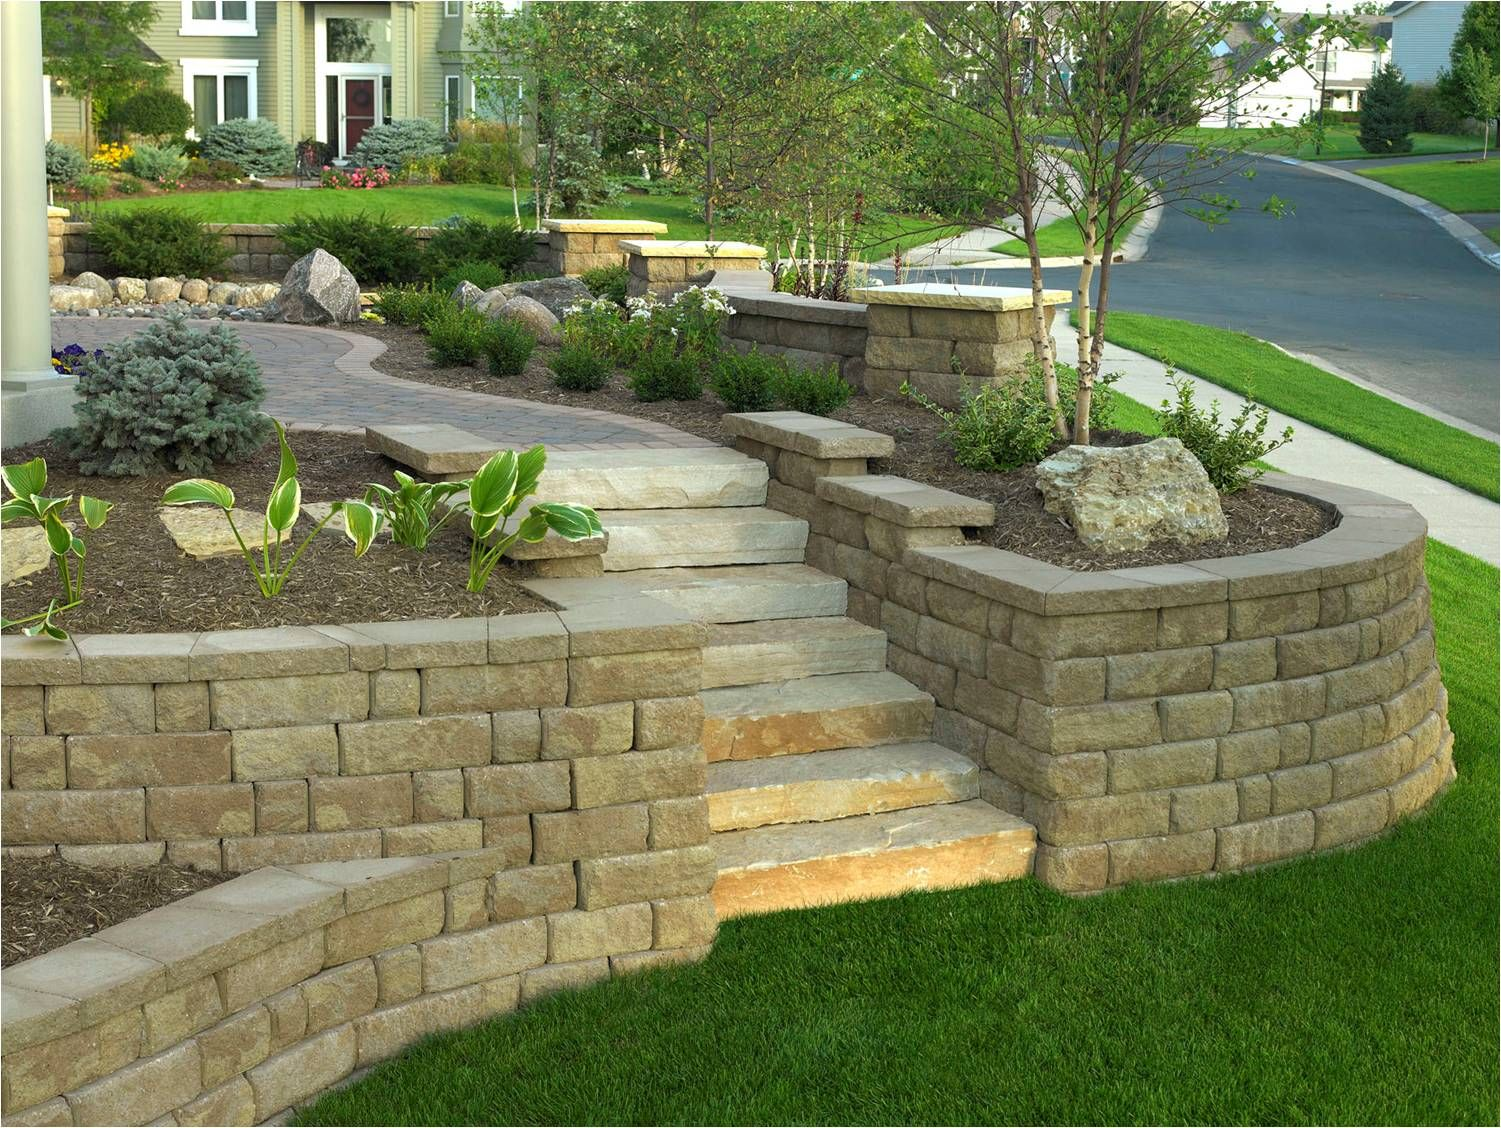 Concrete Block Retaining Wall Design store 18 cinder block wall design on wallconcrete block retaining wall building concrete block retaining Concrete Block Retaining Wall Bing Images